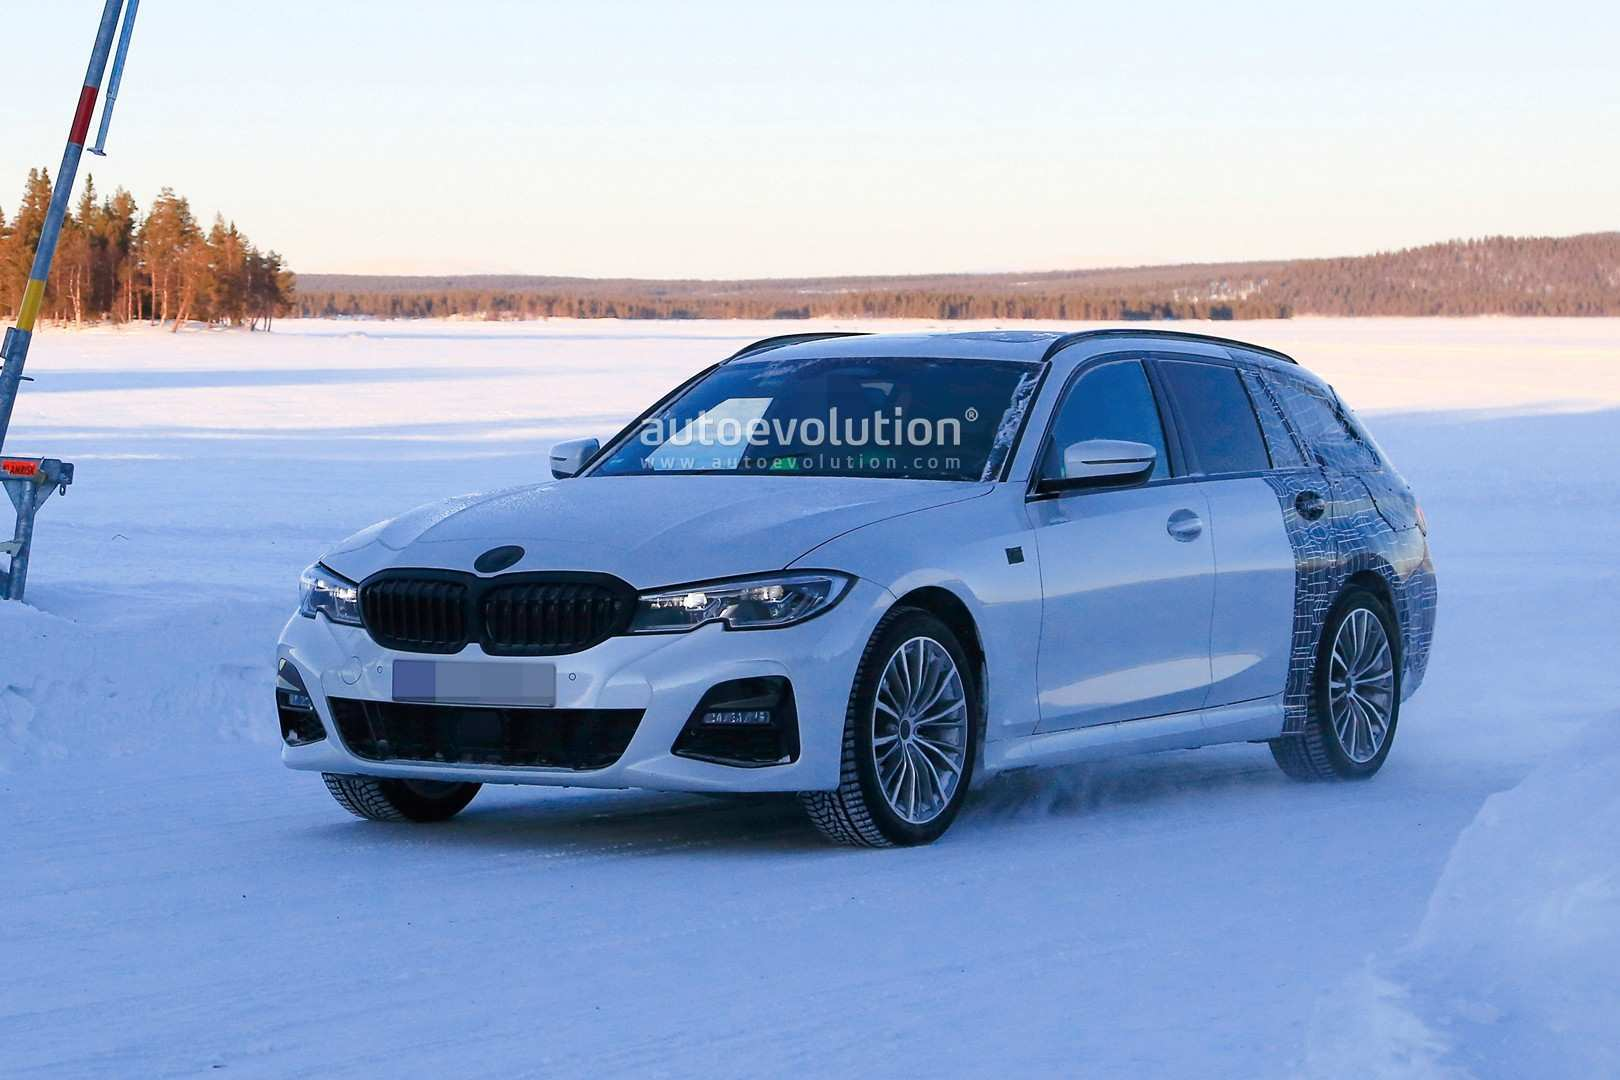 53 Concept of BMW 3 Series Touring 2020 Pictures for BMW 3 Series Touring 2020